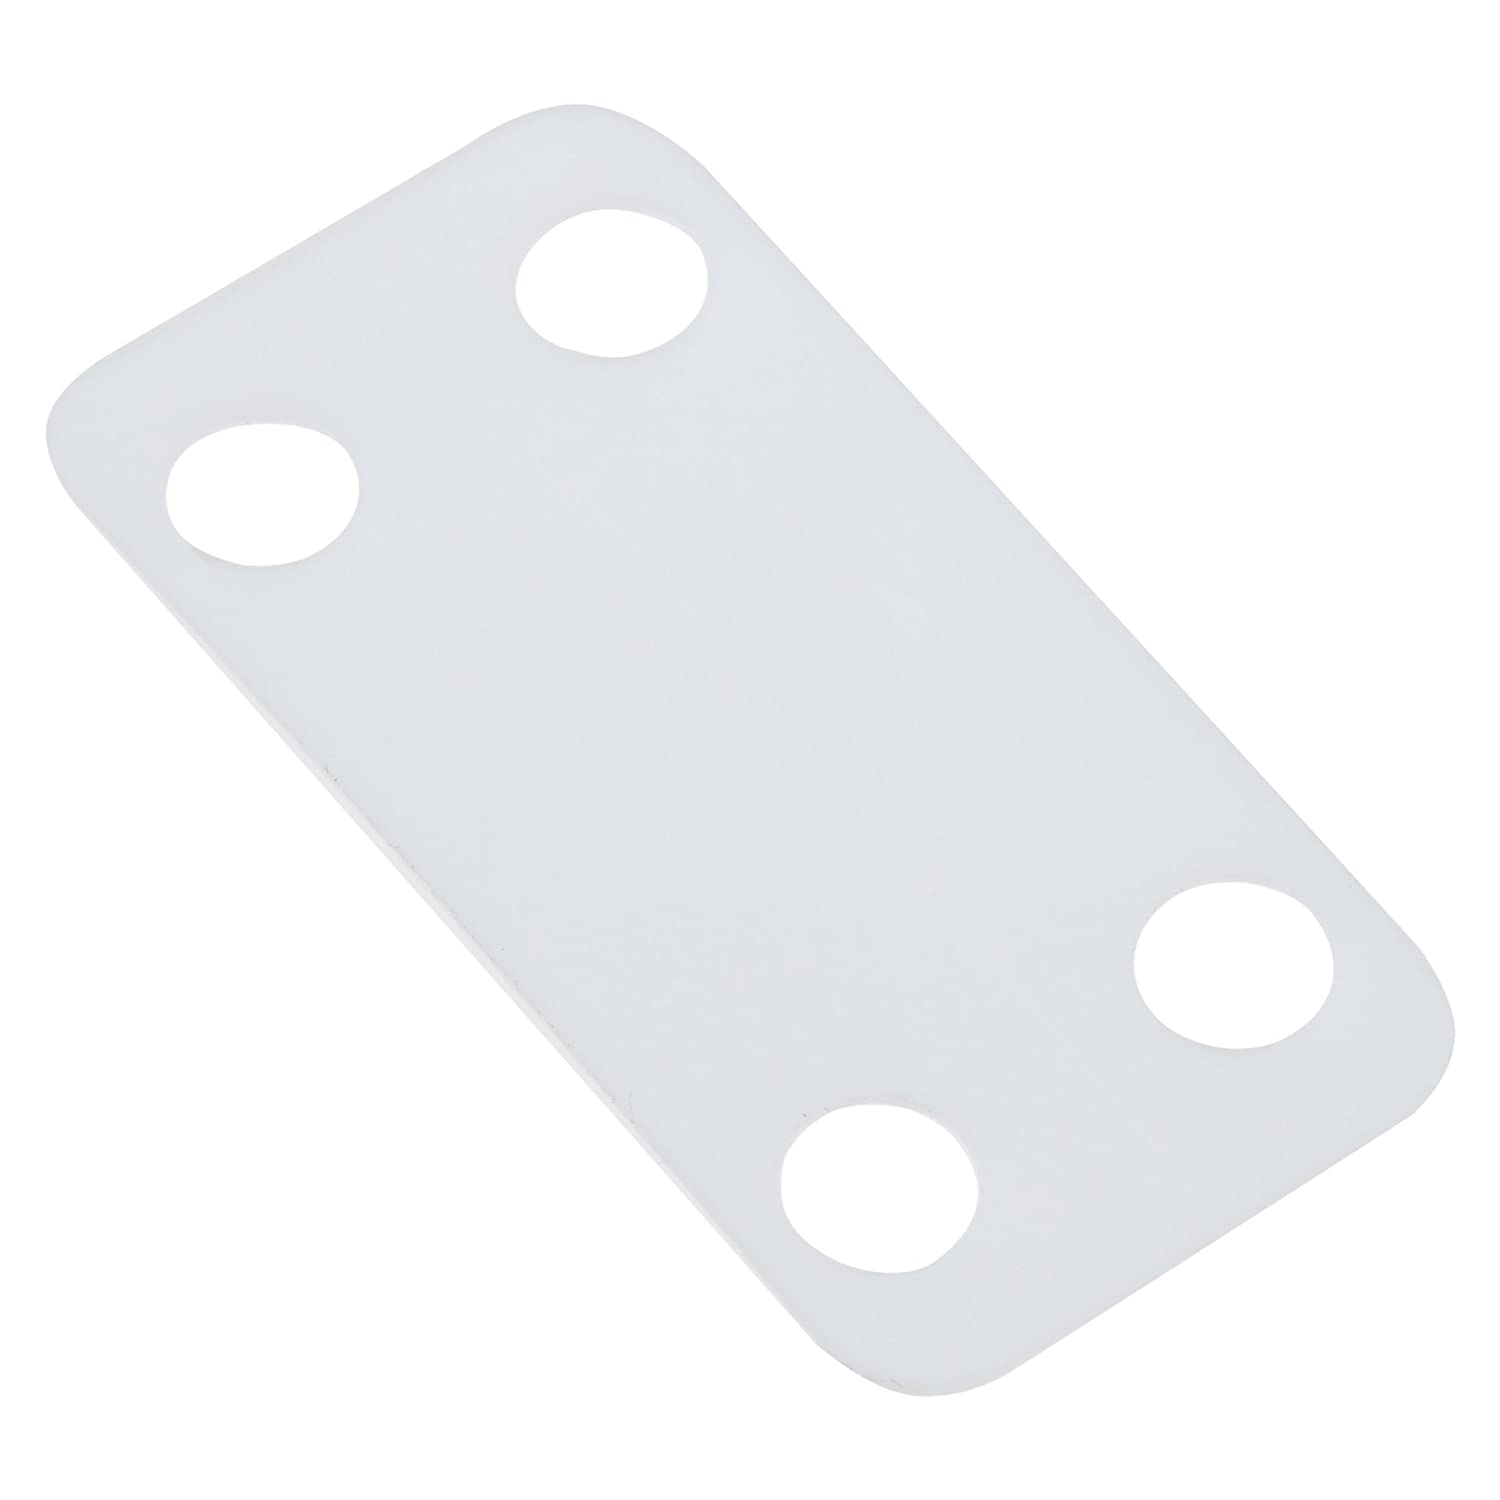 Panduit MP250-C Harness Identification Marker Plate, Nylon 6.6, 2.50 by 0.75-Inch, White (100-Pack)